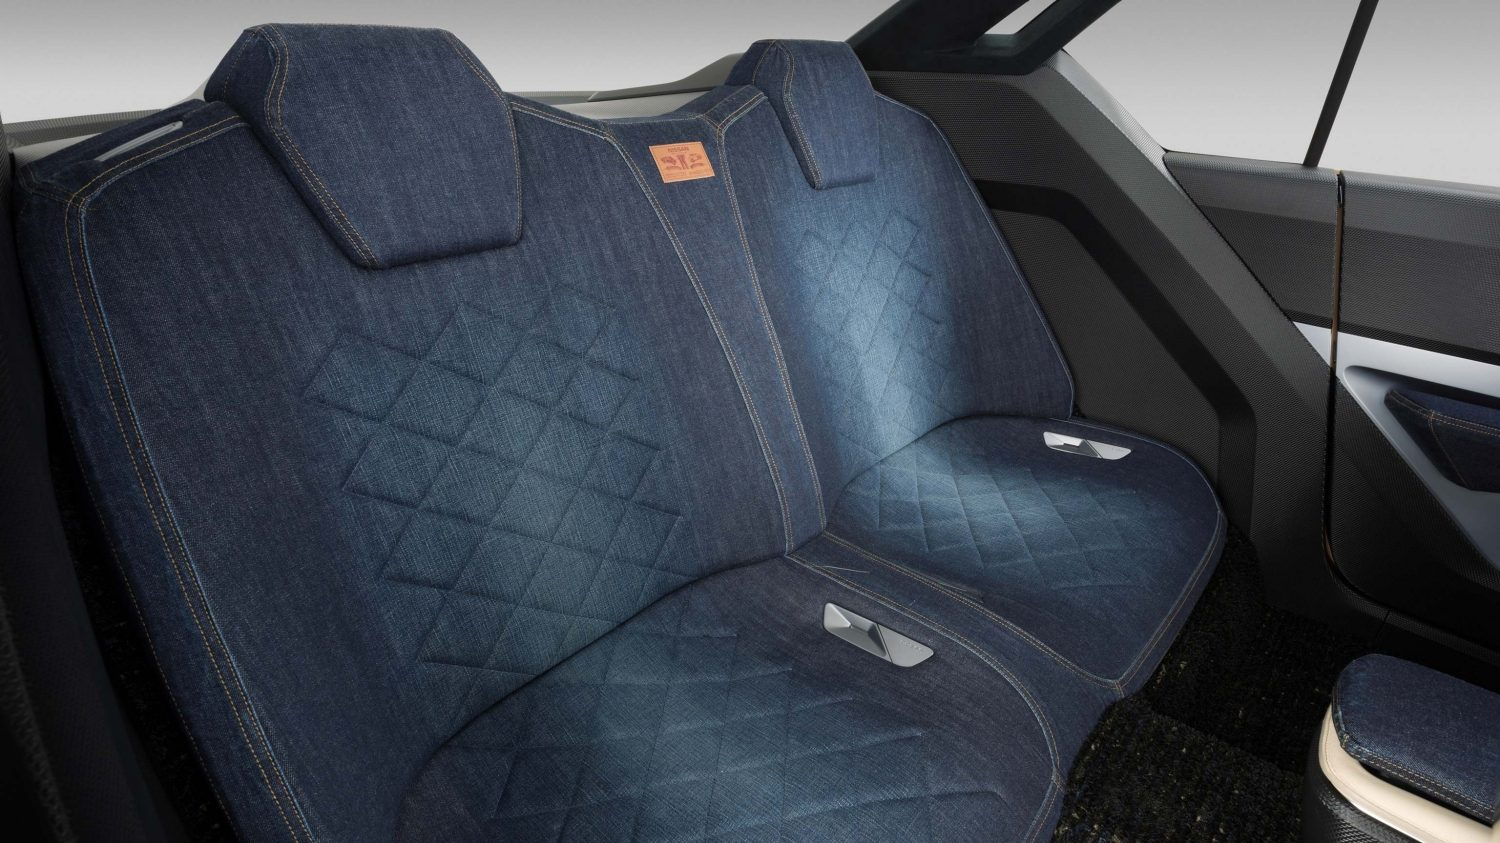 Experience Nissan - Concept car - IDx Freeflow - seat fabric detail